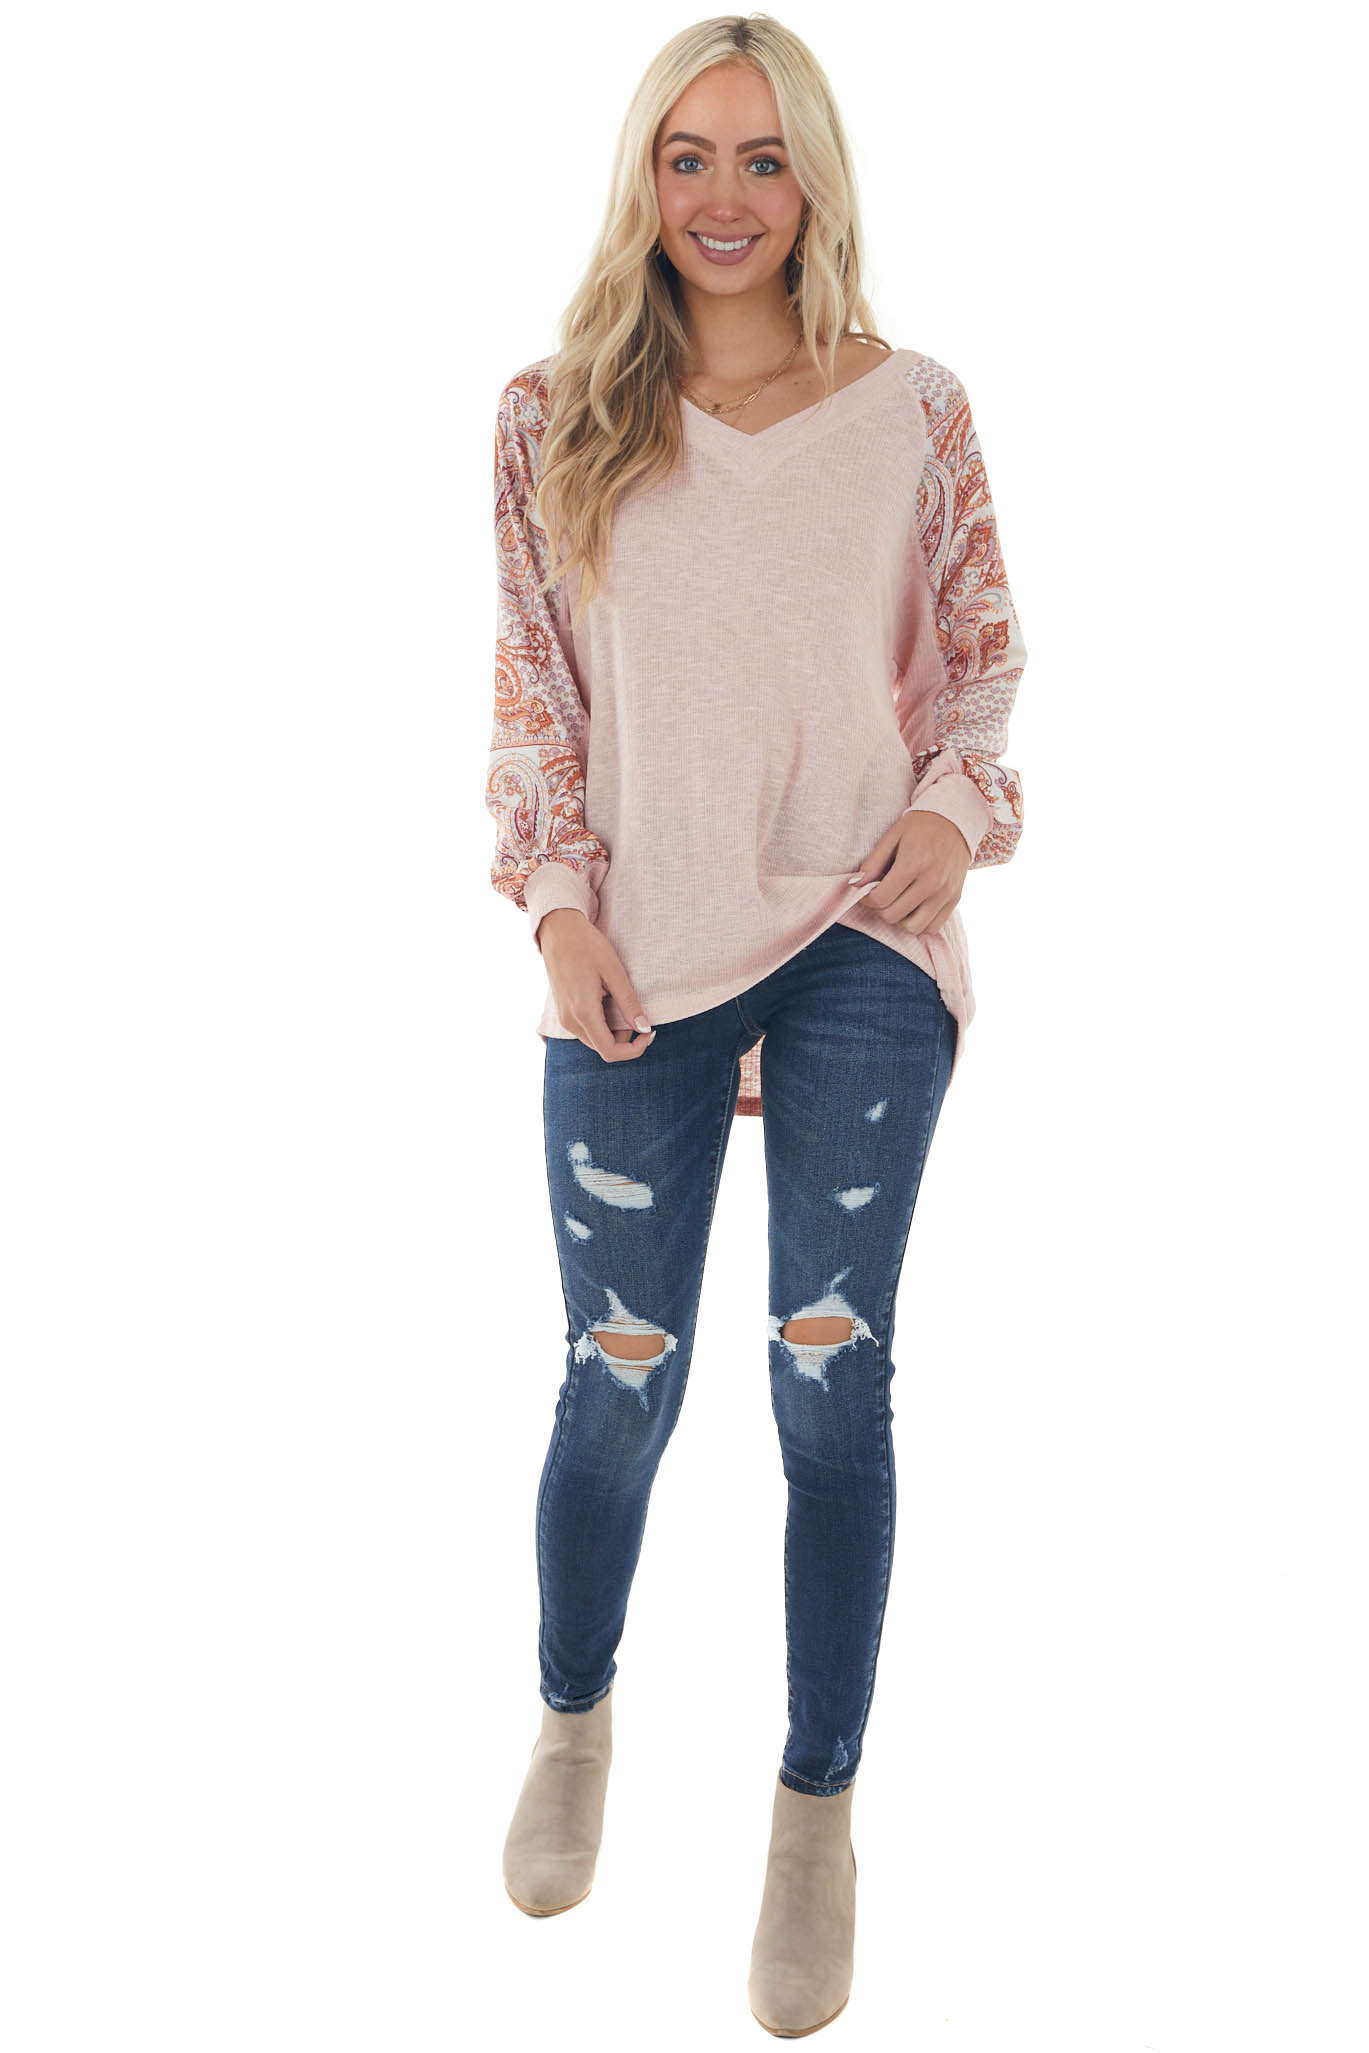 Tea Rose Knit Top with Paisley Printed Sleeves